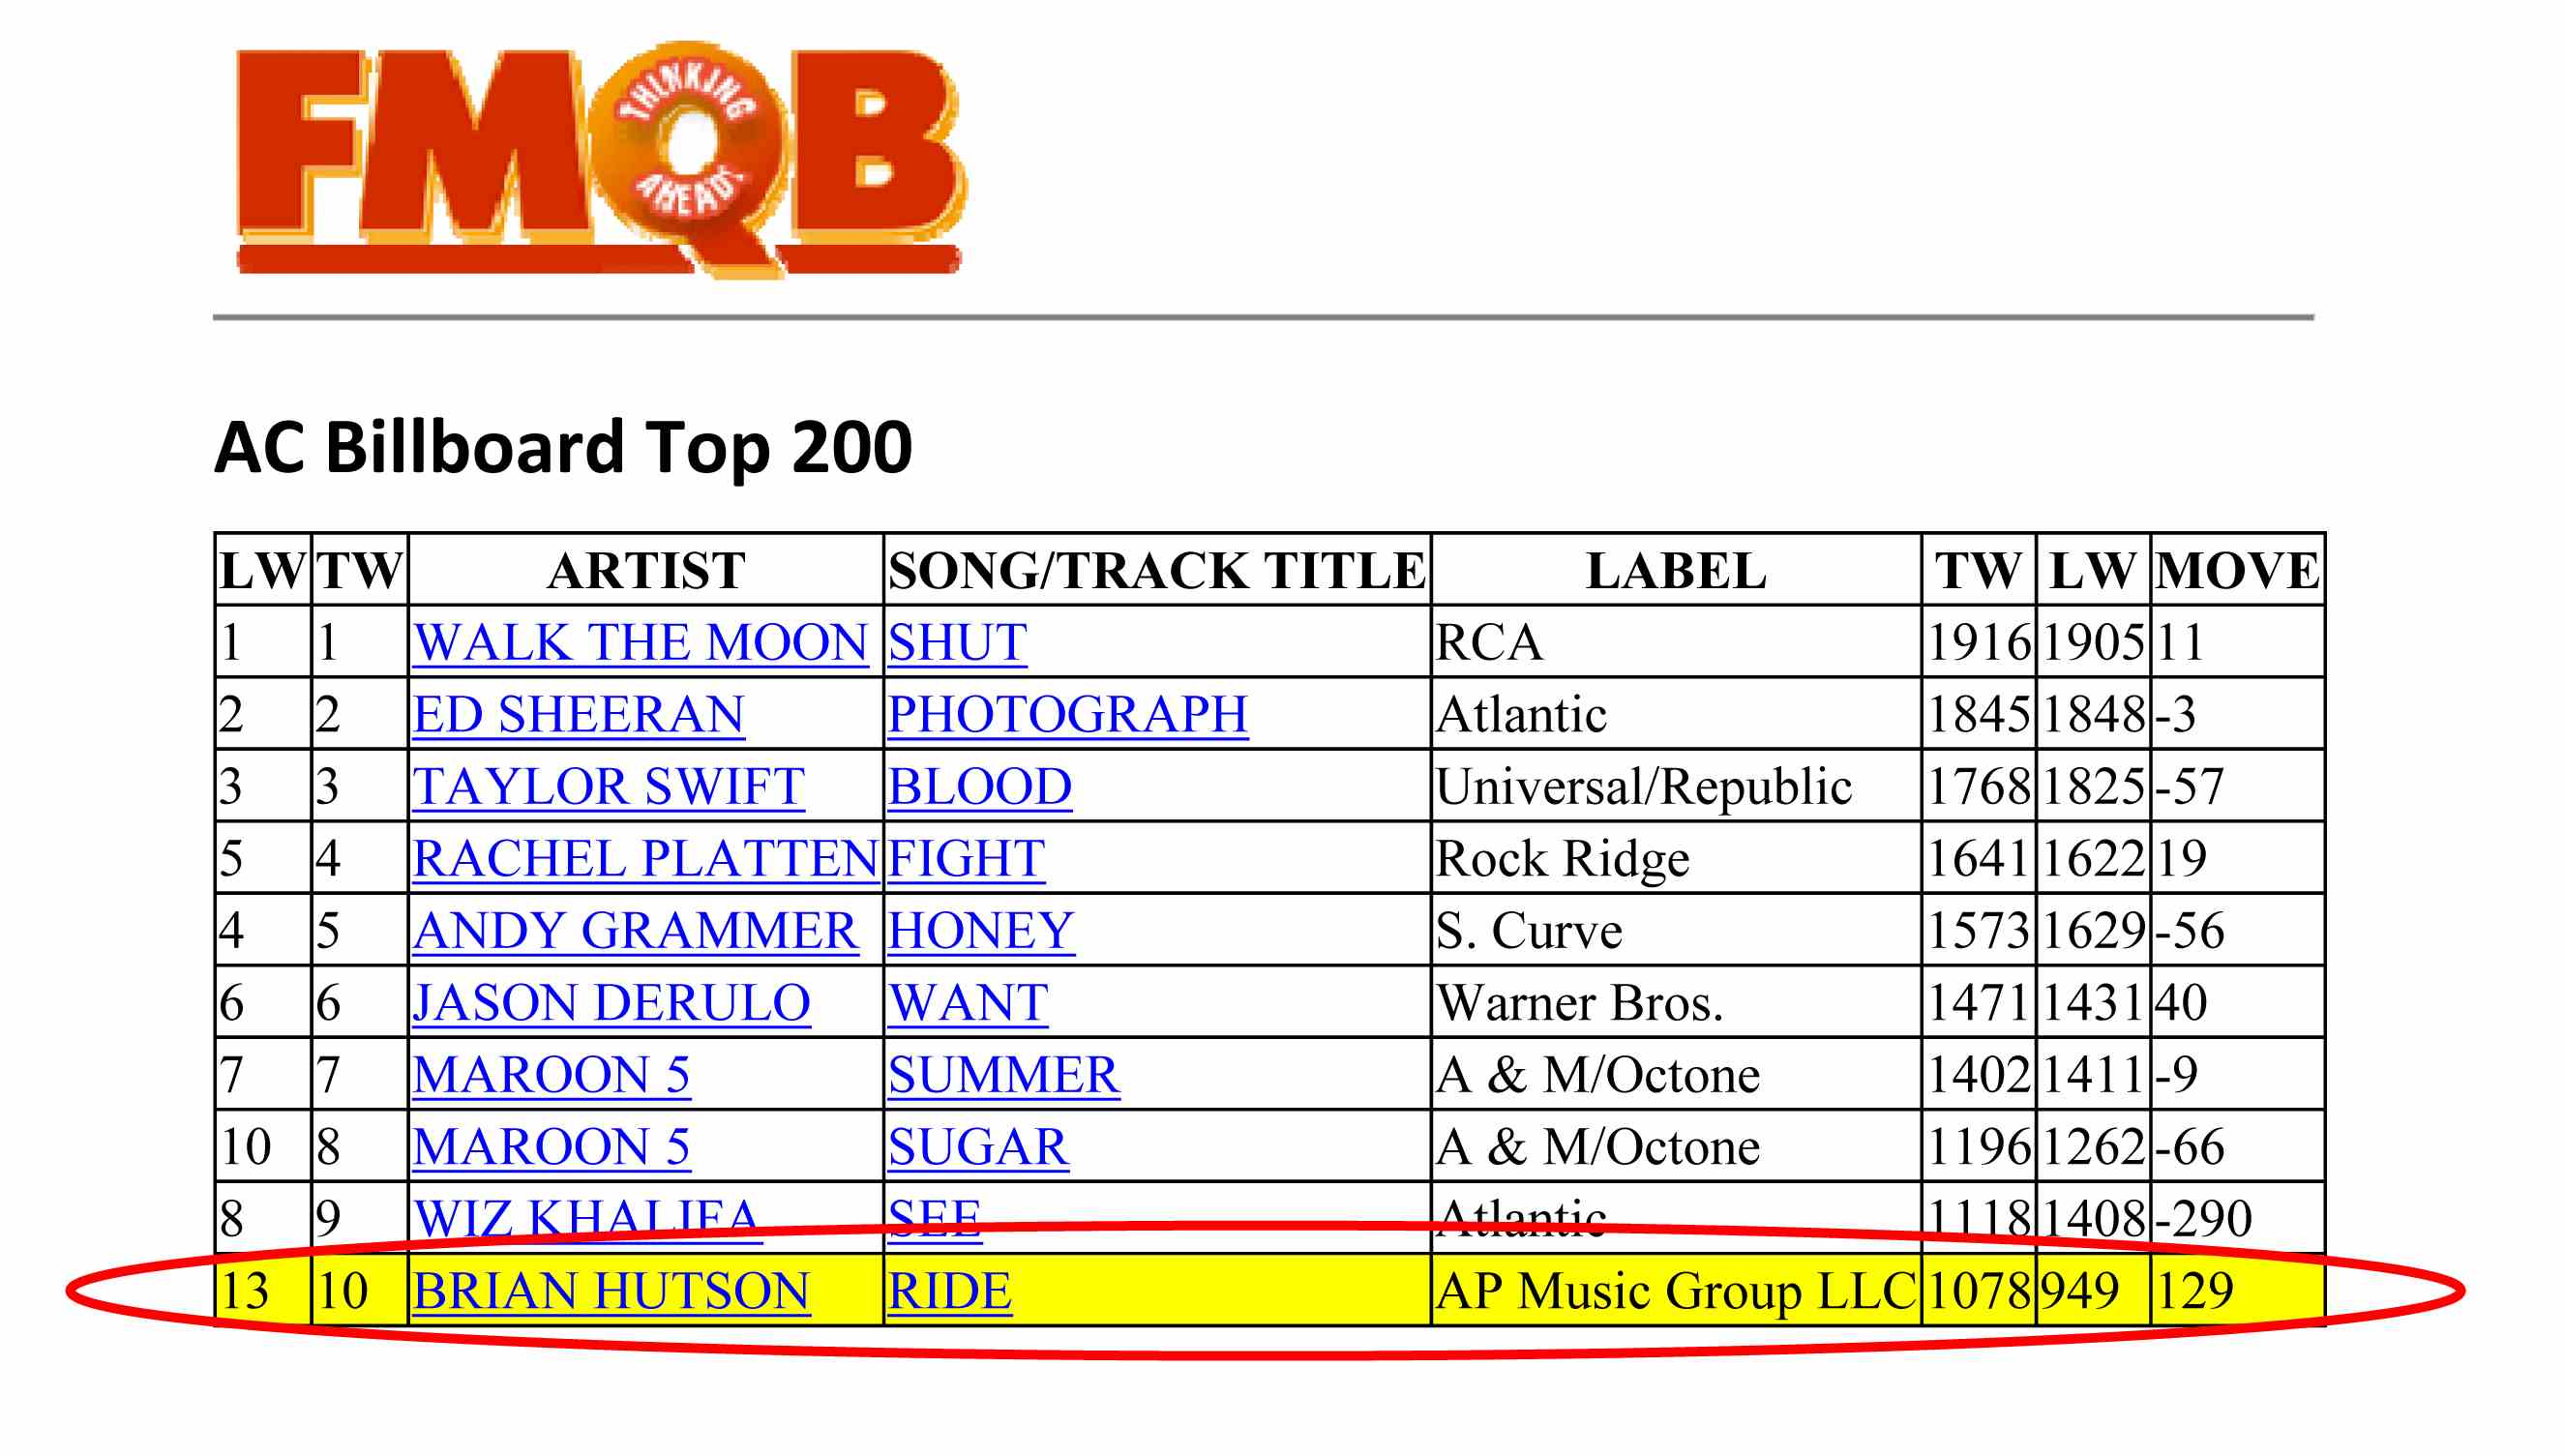 Brian Hutson's Let It Ride AC Top 10 FMQB September 2015